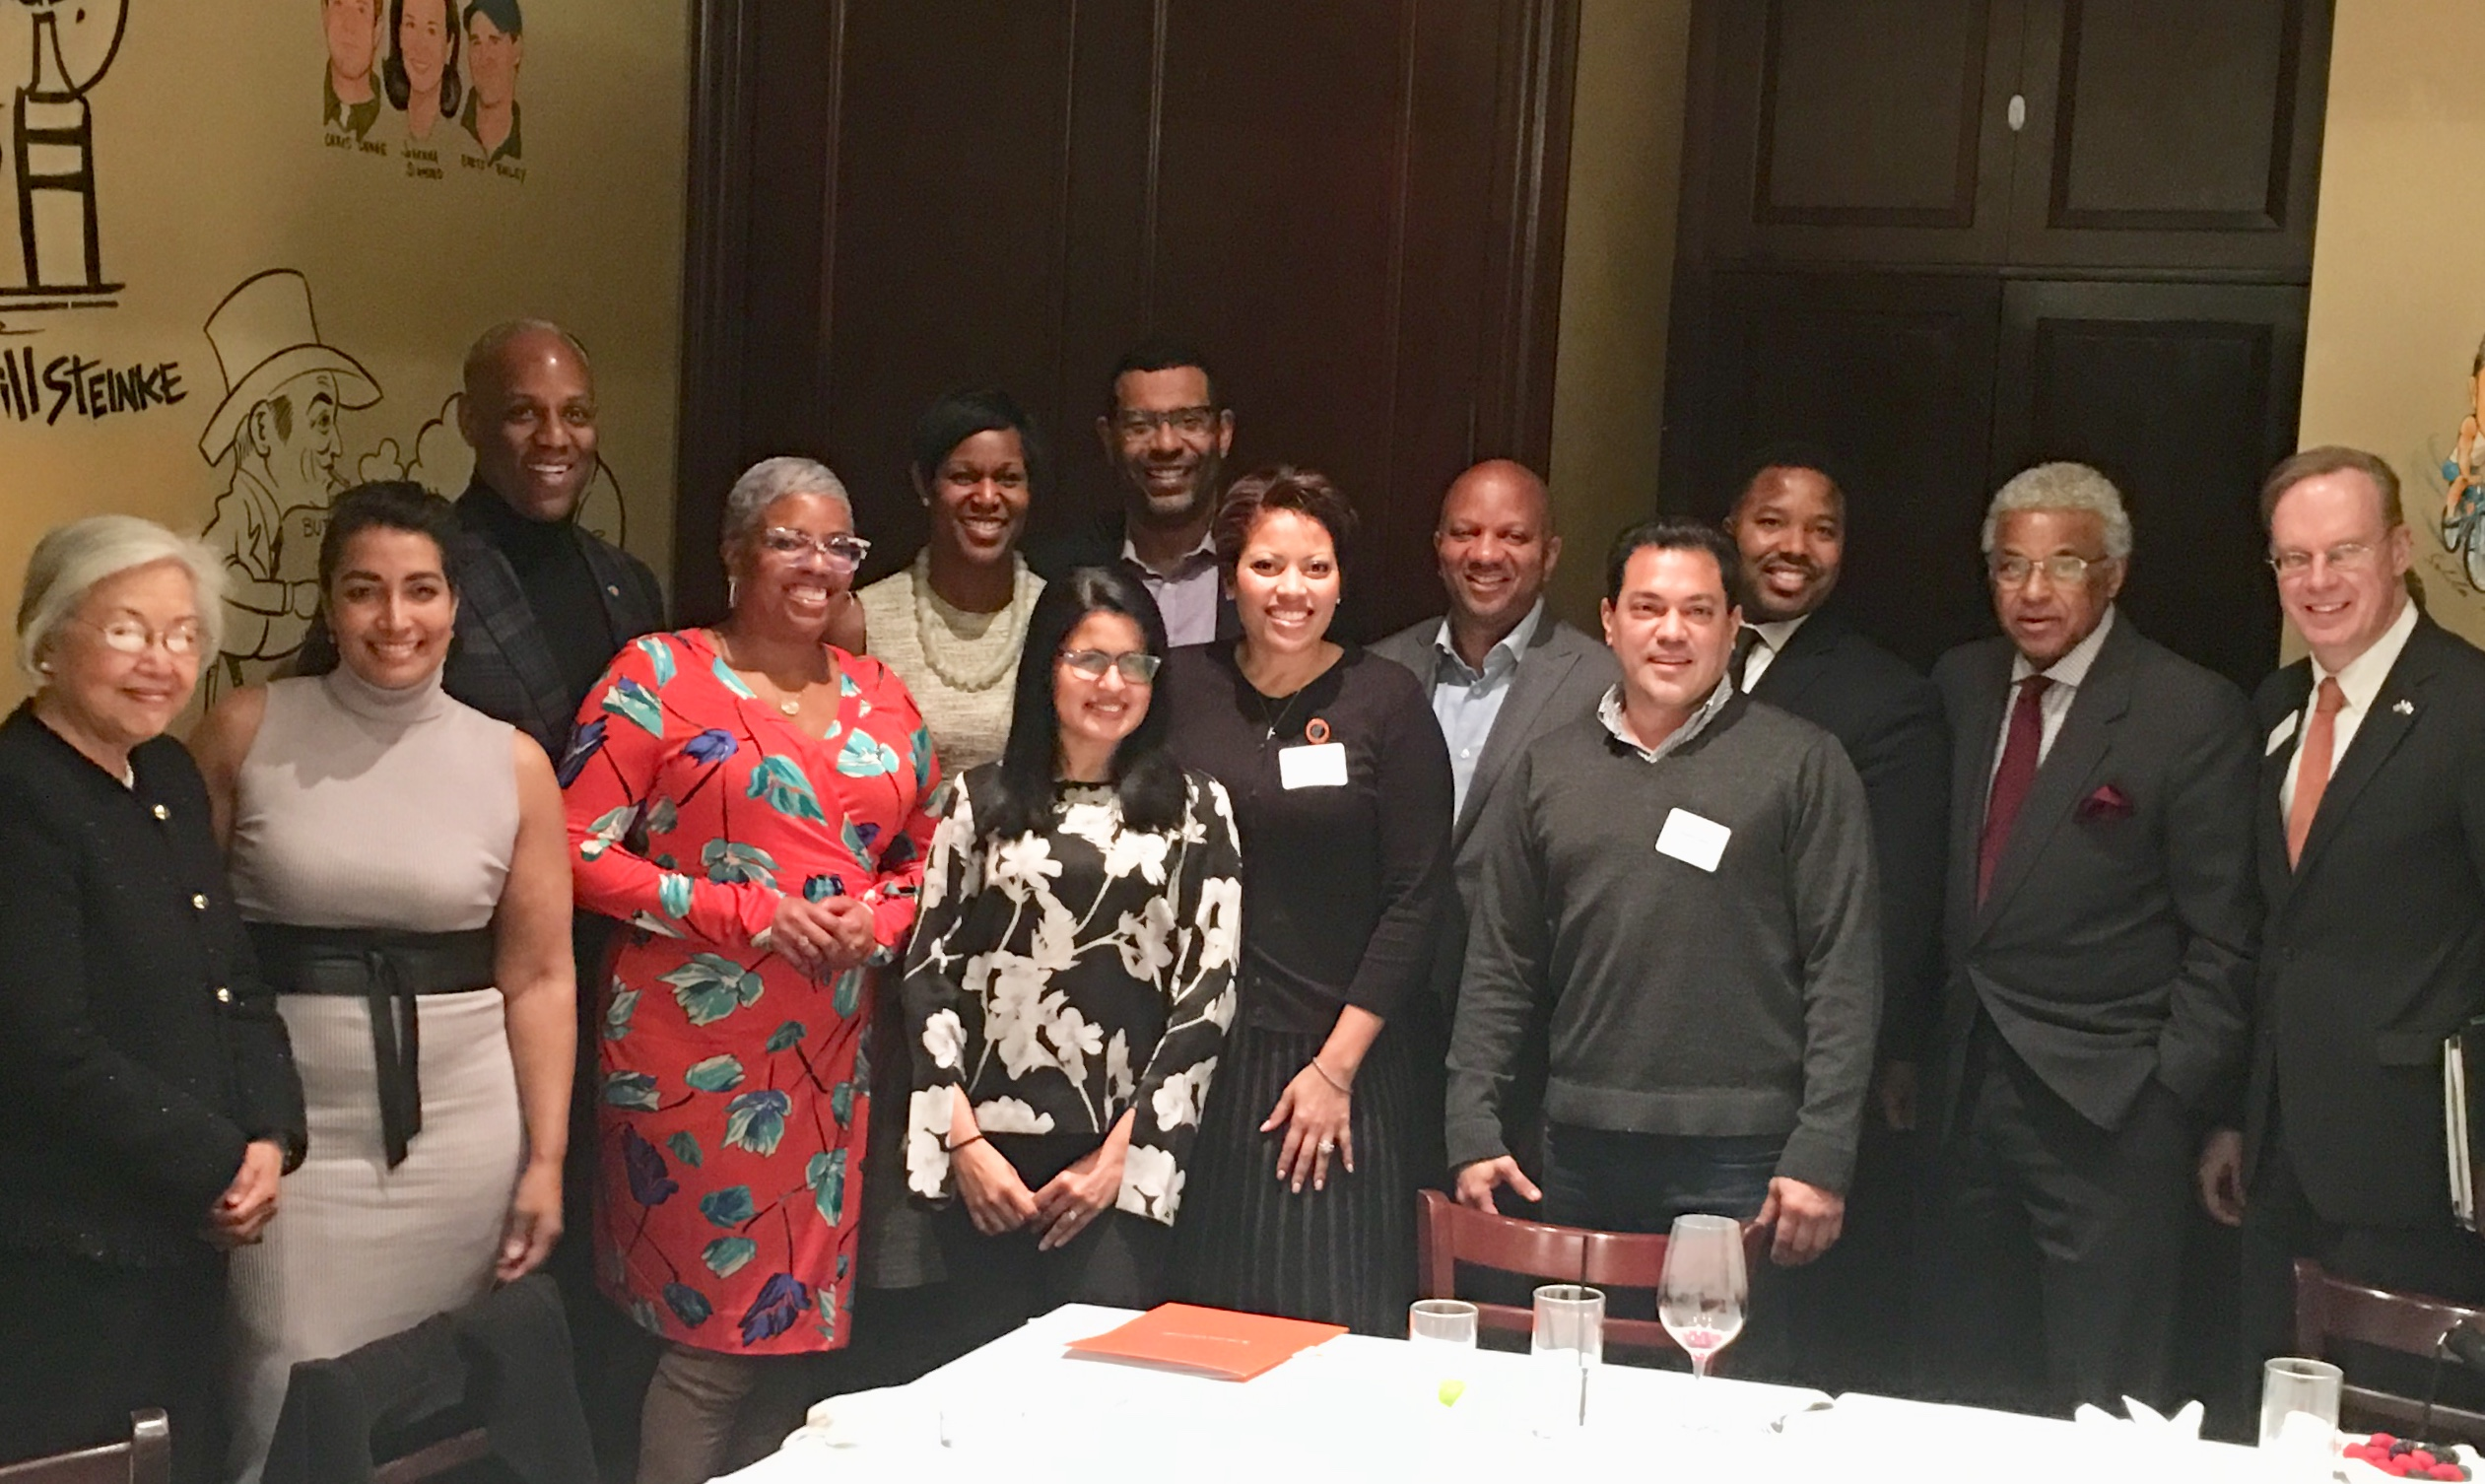 Several members of the Office of Multicultural Advancement's new alumni advisory council came together this week for a welcome dinner in New York City. Front row: Dr. Ruth Chen; Rosann Santos '95, Candace Carnage '90, Kristin Bragg '93, Rachel Vassel '91, Zhamyr Cueva '93. Back row: Victor Holman '82, Tara Brown Favors '95, Keith Brown '82, Charles Willis Jr. '90, Vincent Cohen Jr. 9'92, William (Billy) Hunter '65 and Chancellor Kent Syverud.